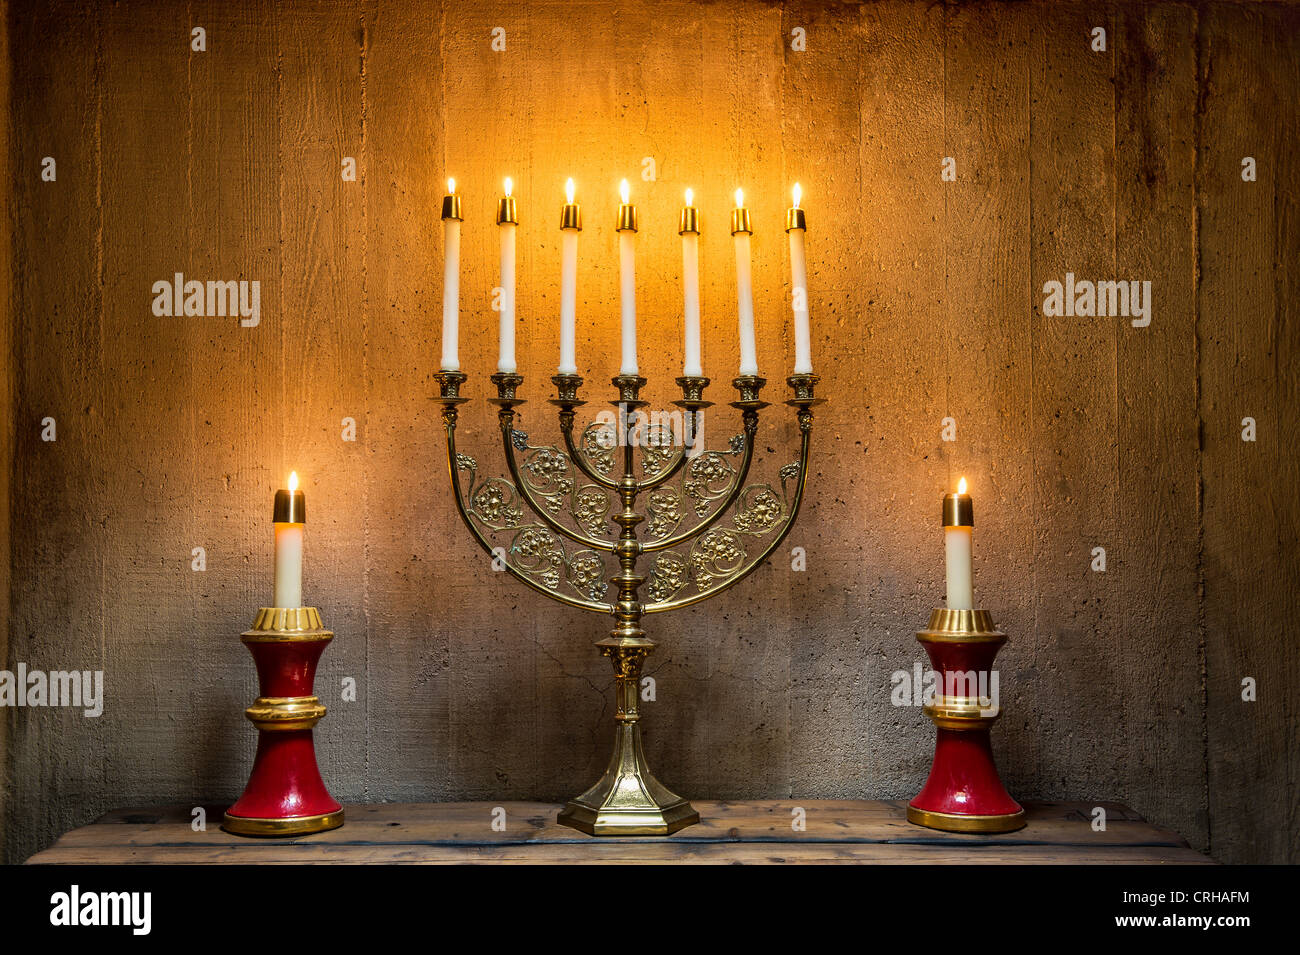 Menorah - Stock Image